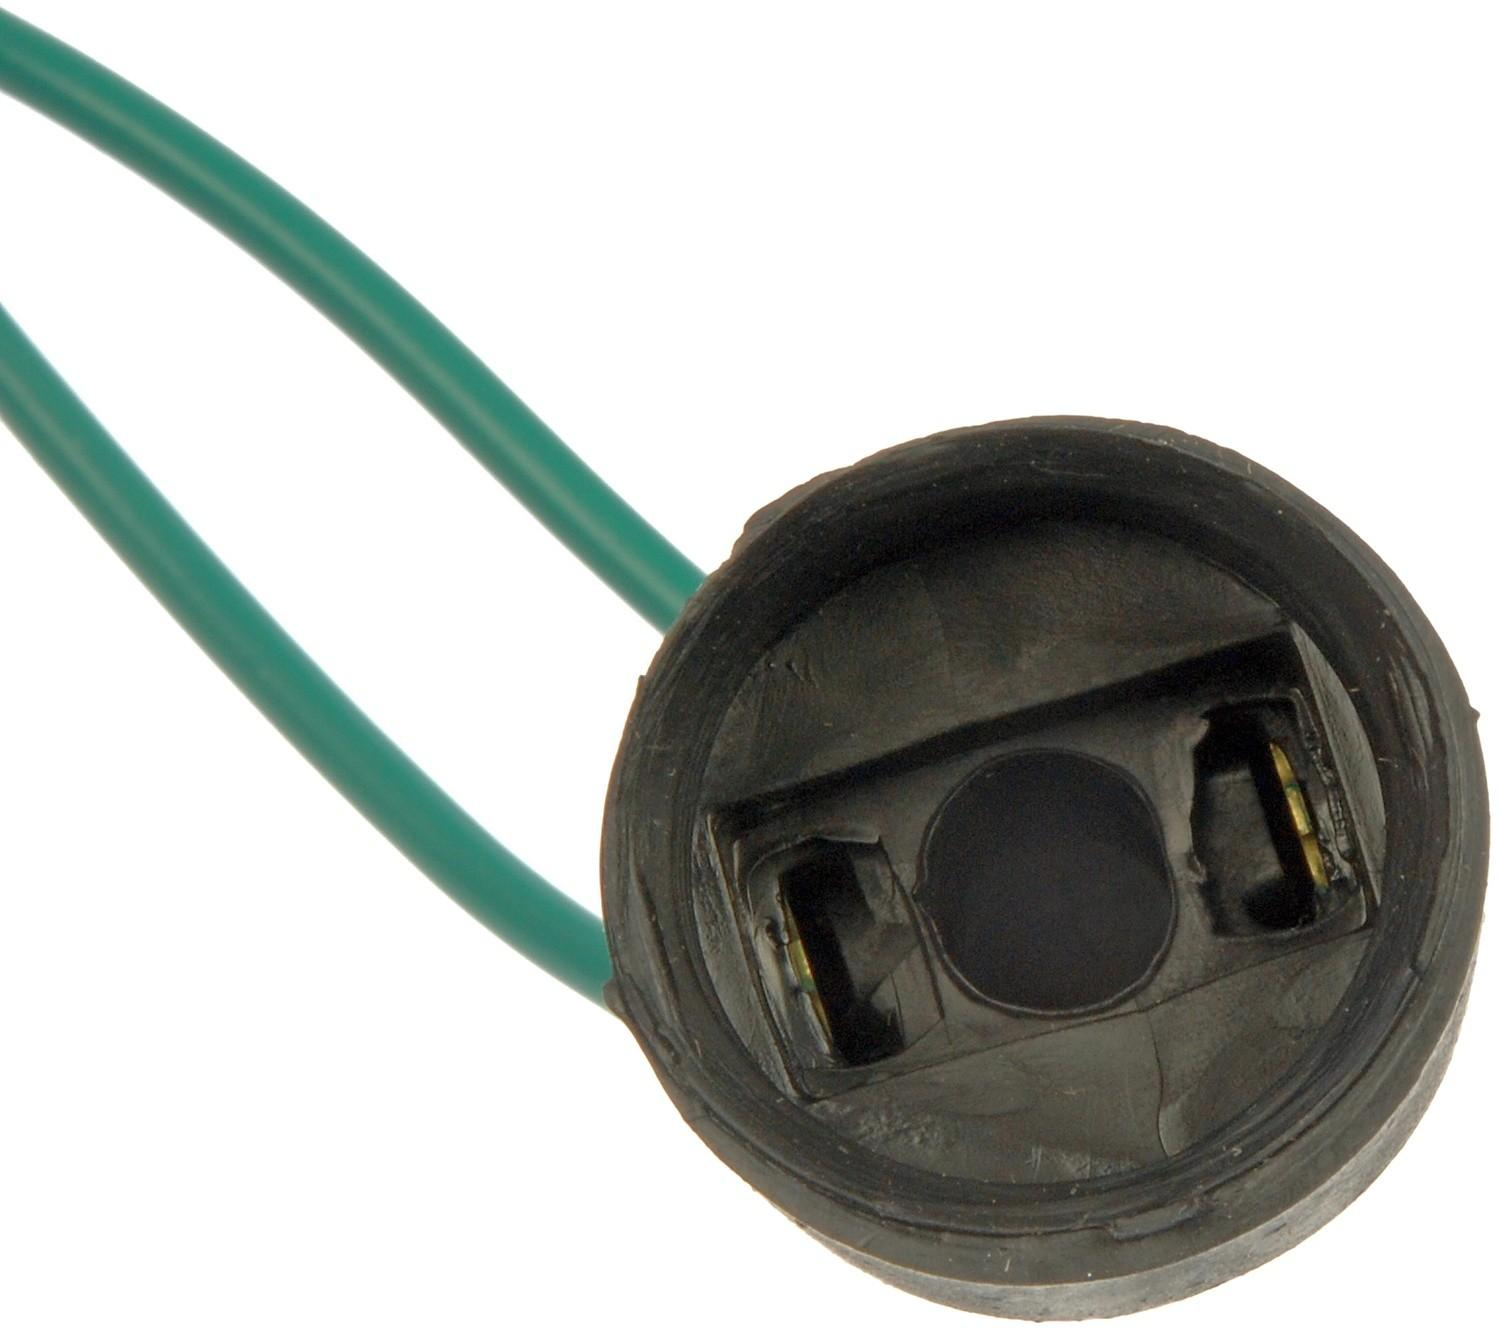 DORMAN - CONDUCT-TITE - HVAC Switch Connector - DCT 85141